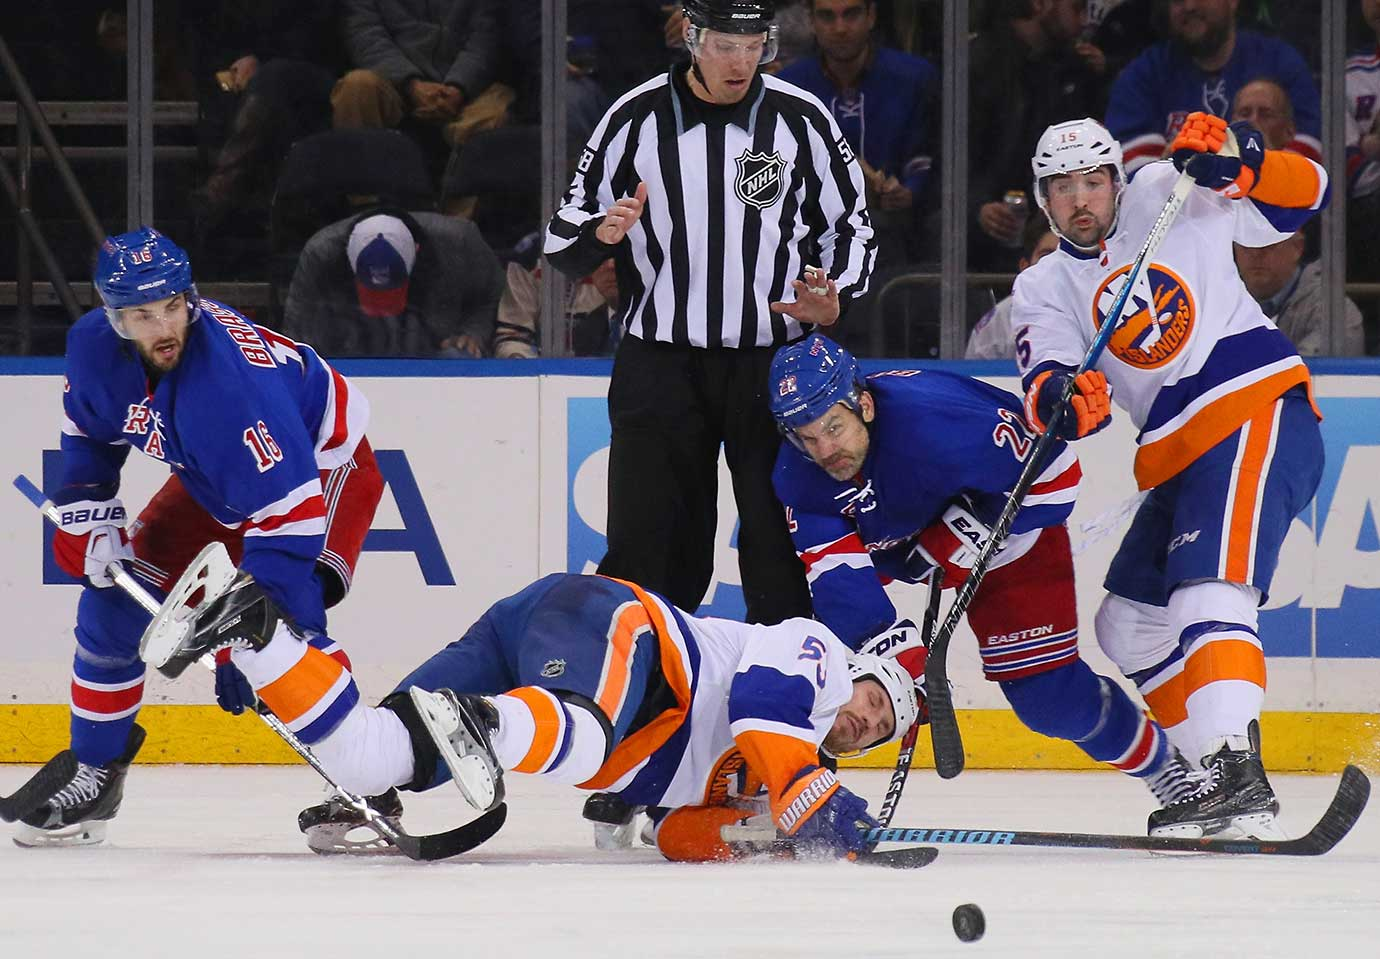 Casey Cizikas of the New York Islanders is tripped up during a faceoff against the New York Rangers.